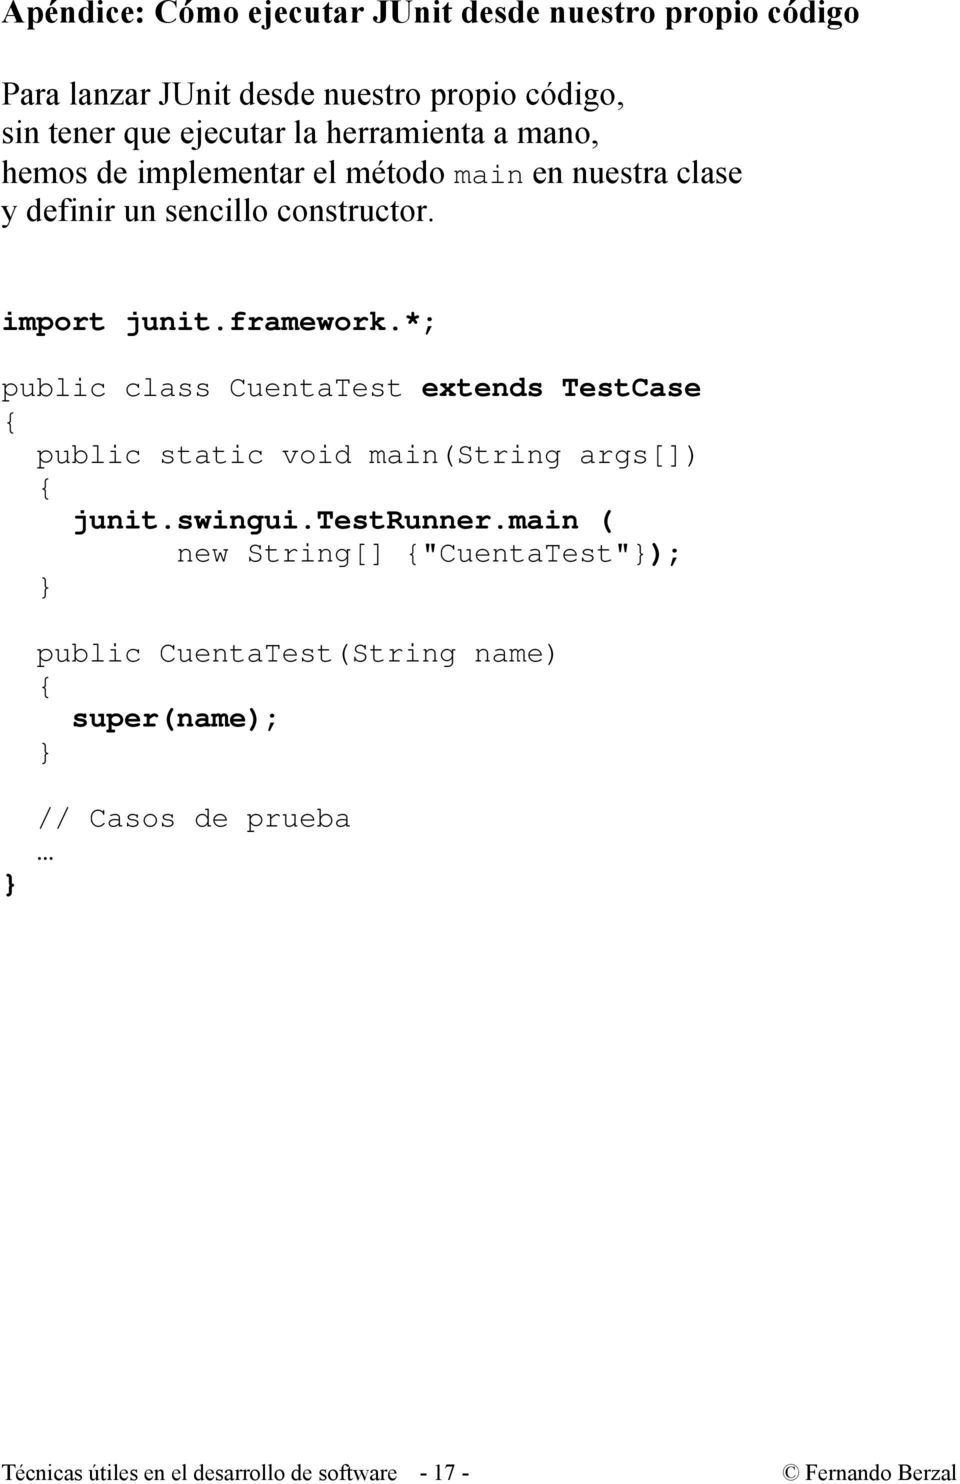 framework.*; public class CuentaTest extends TestCase public static void main(string args[]) junit.swingui.testrunner.